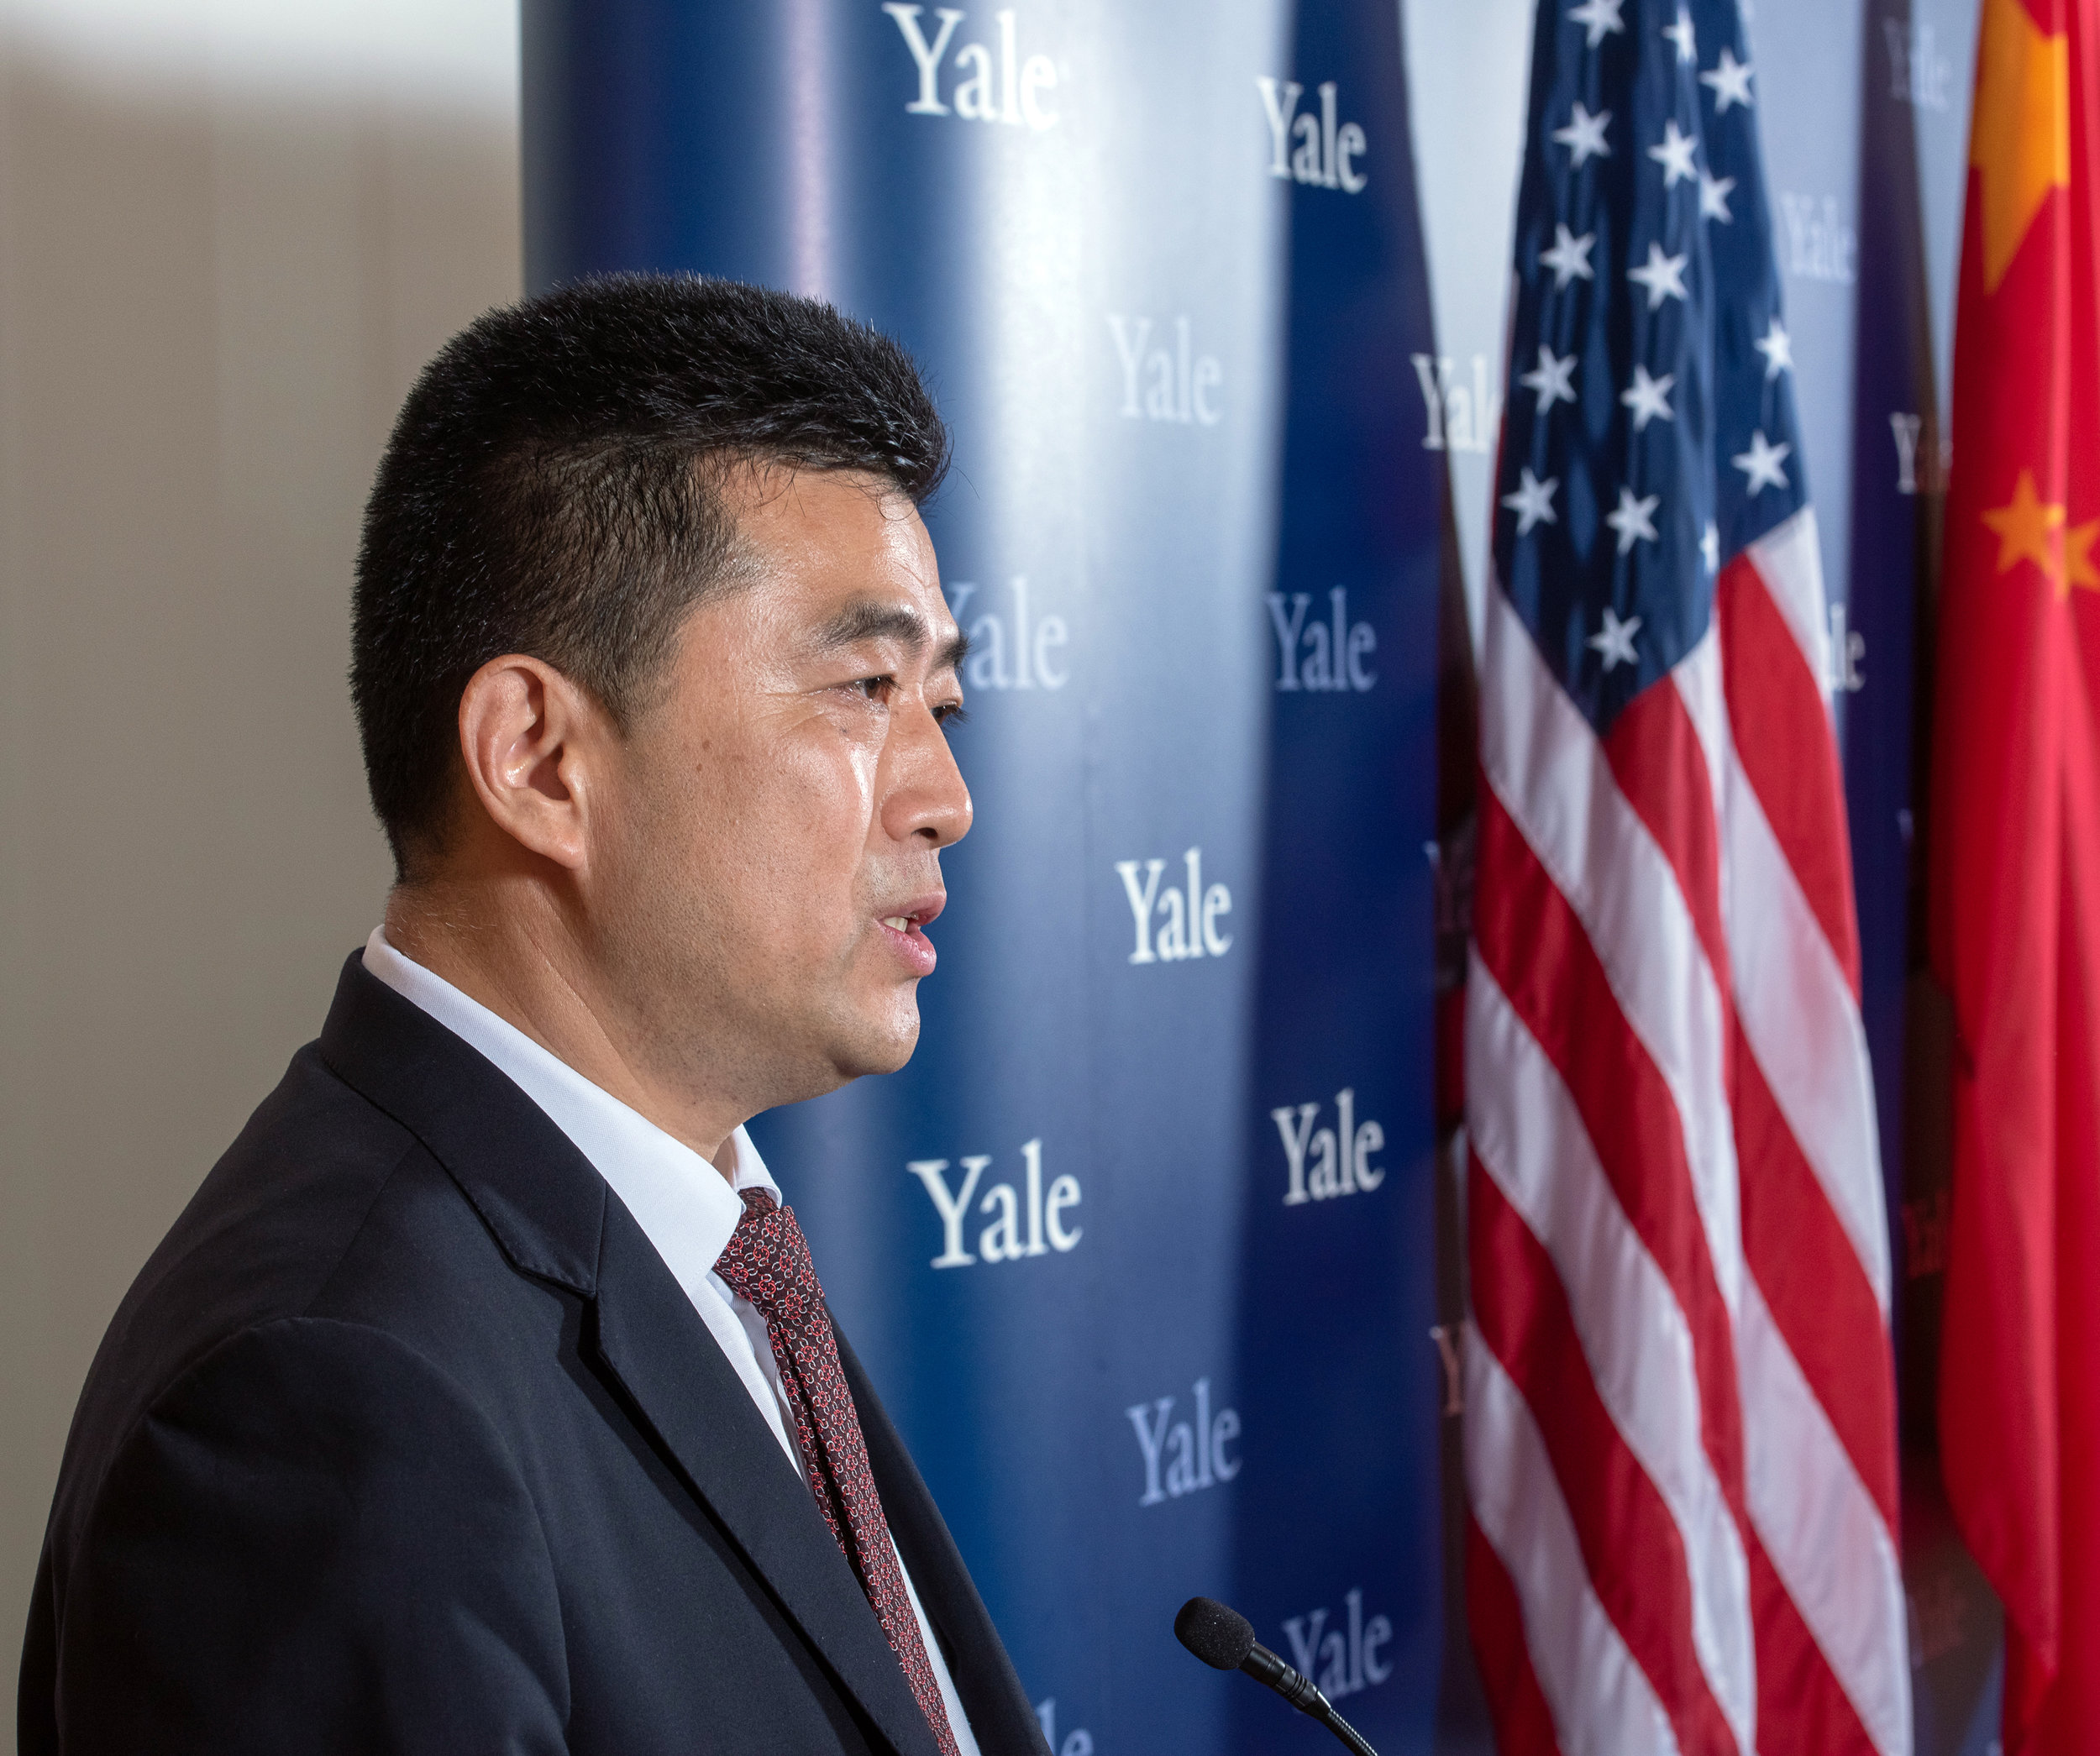 2018_11_02 Yale China Youth Leaders_Lavitt_6.jpg